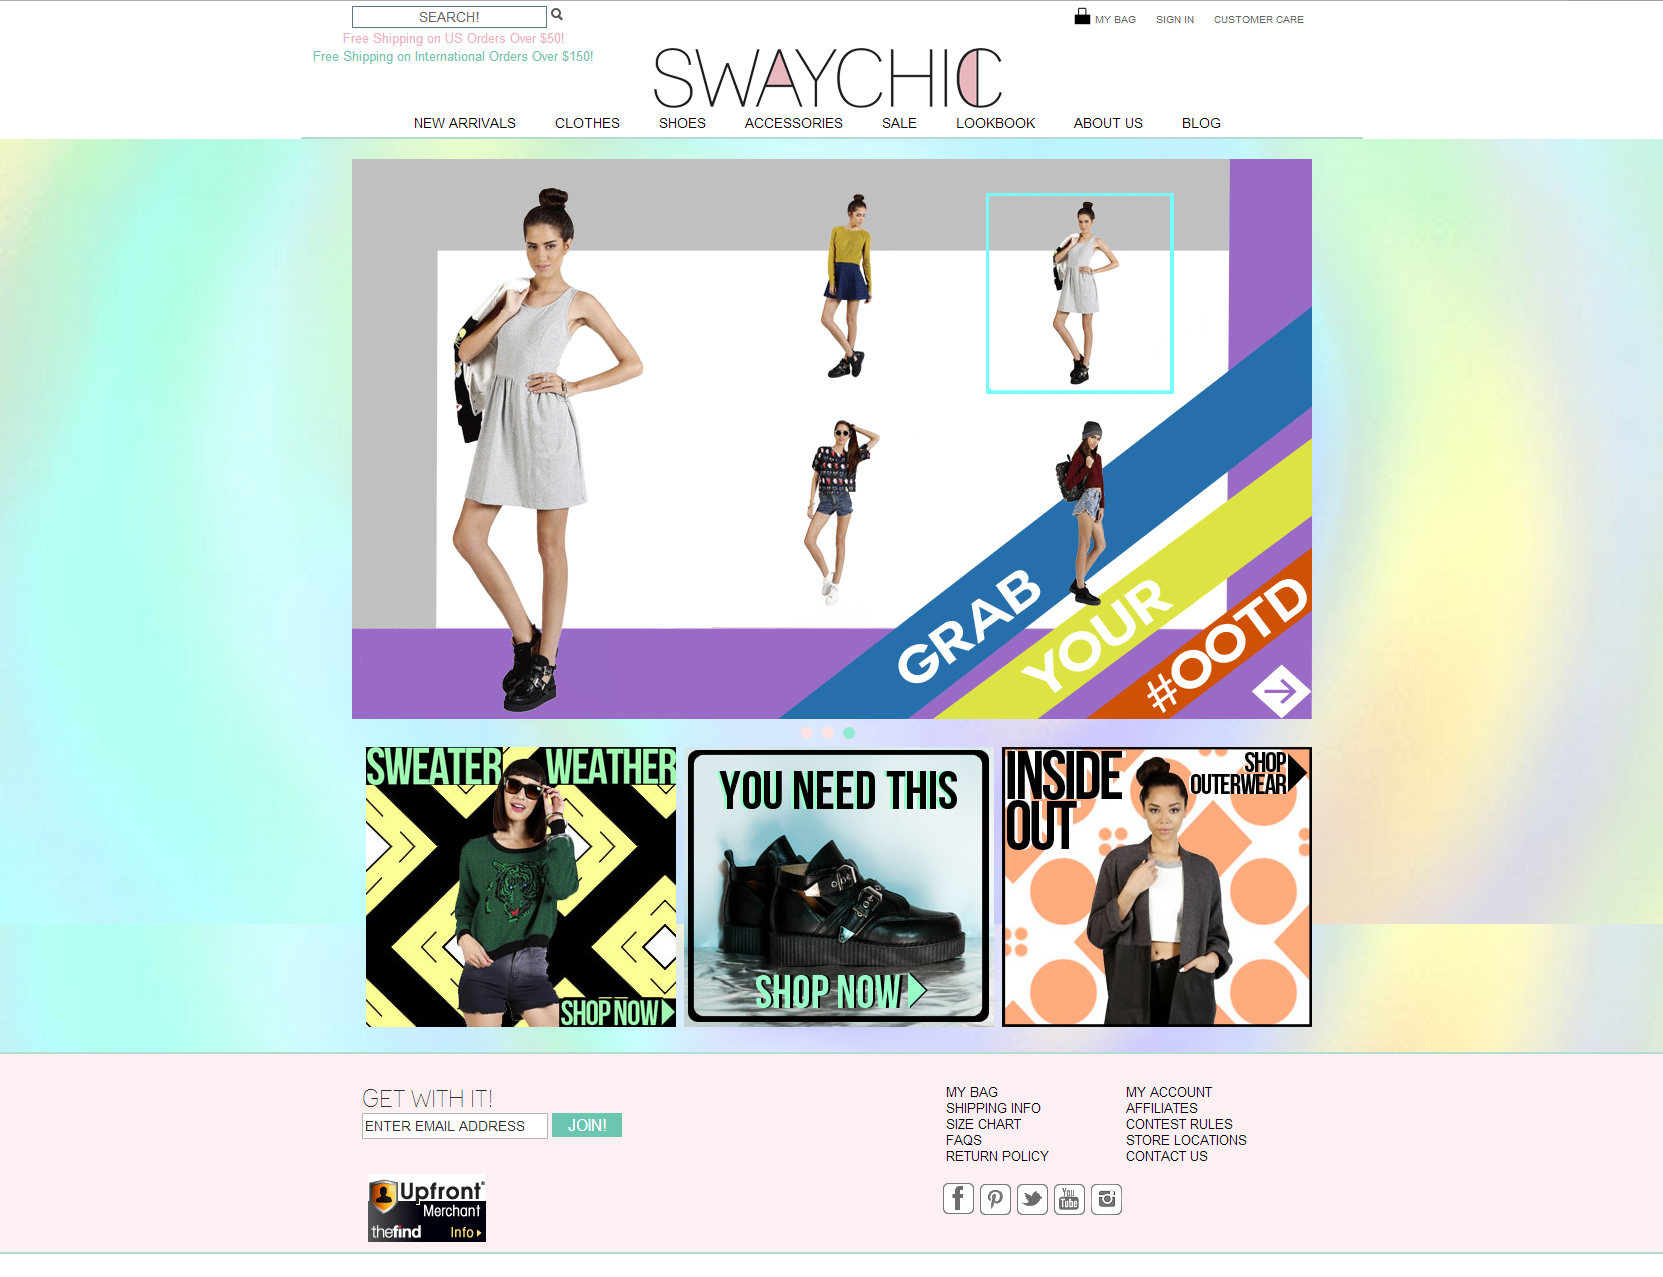 Sway Chic Online Shop